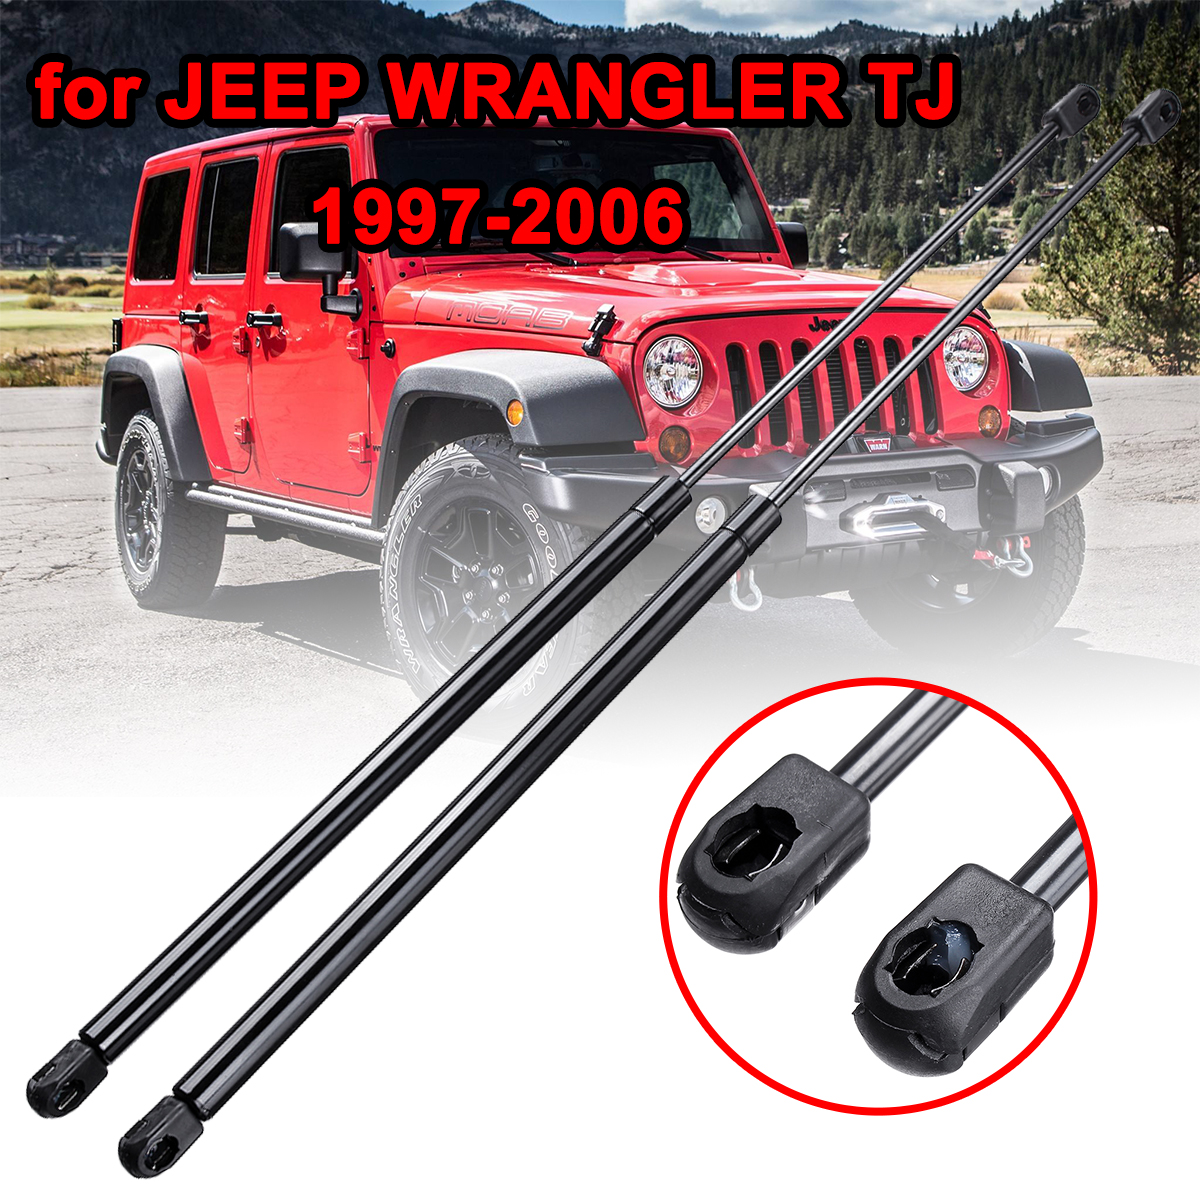 1Pair Car Rear Trunk Hood Lift Supports Props Rod Arm Shocks Strut Bars For Jeep Wrangler TJ 1997 2006 55076310AB 4249|Strut Bars| |  - title=